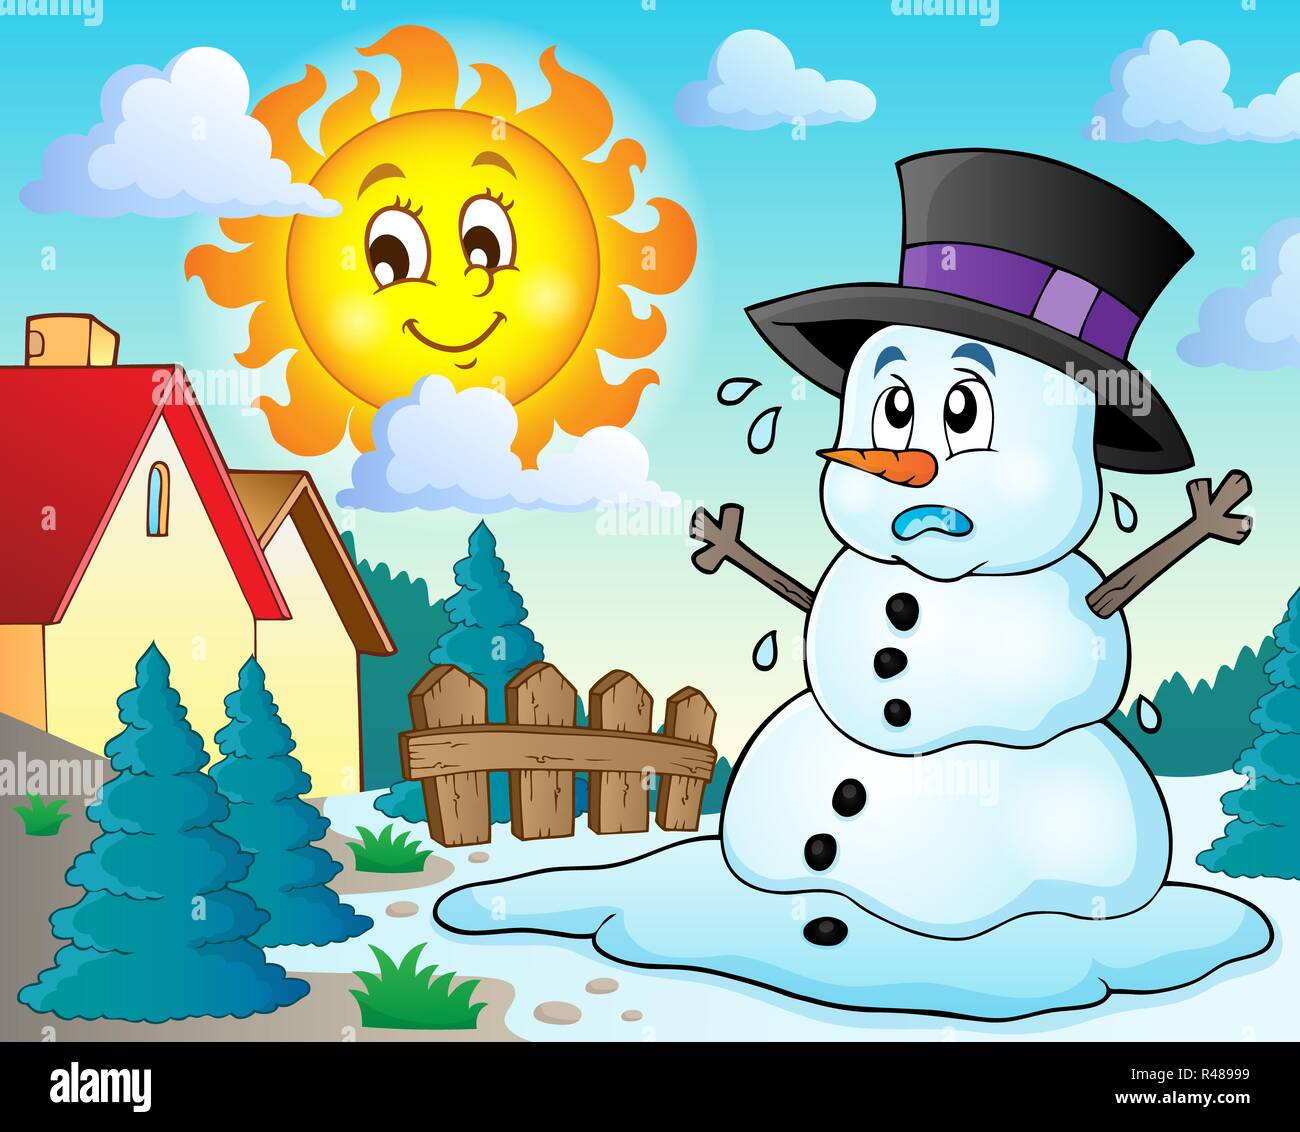 Melting Snowman Spring High Resolution Stock Photography And Images Alamy